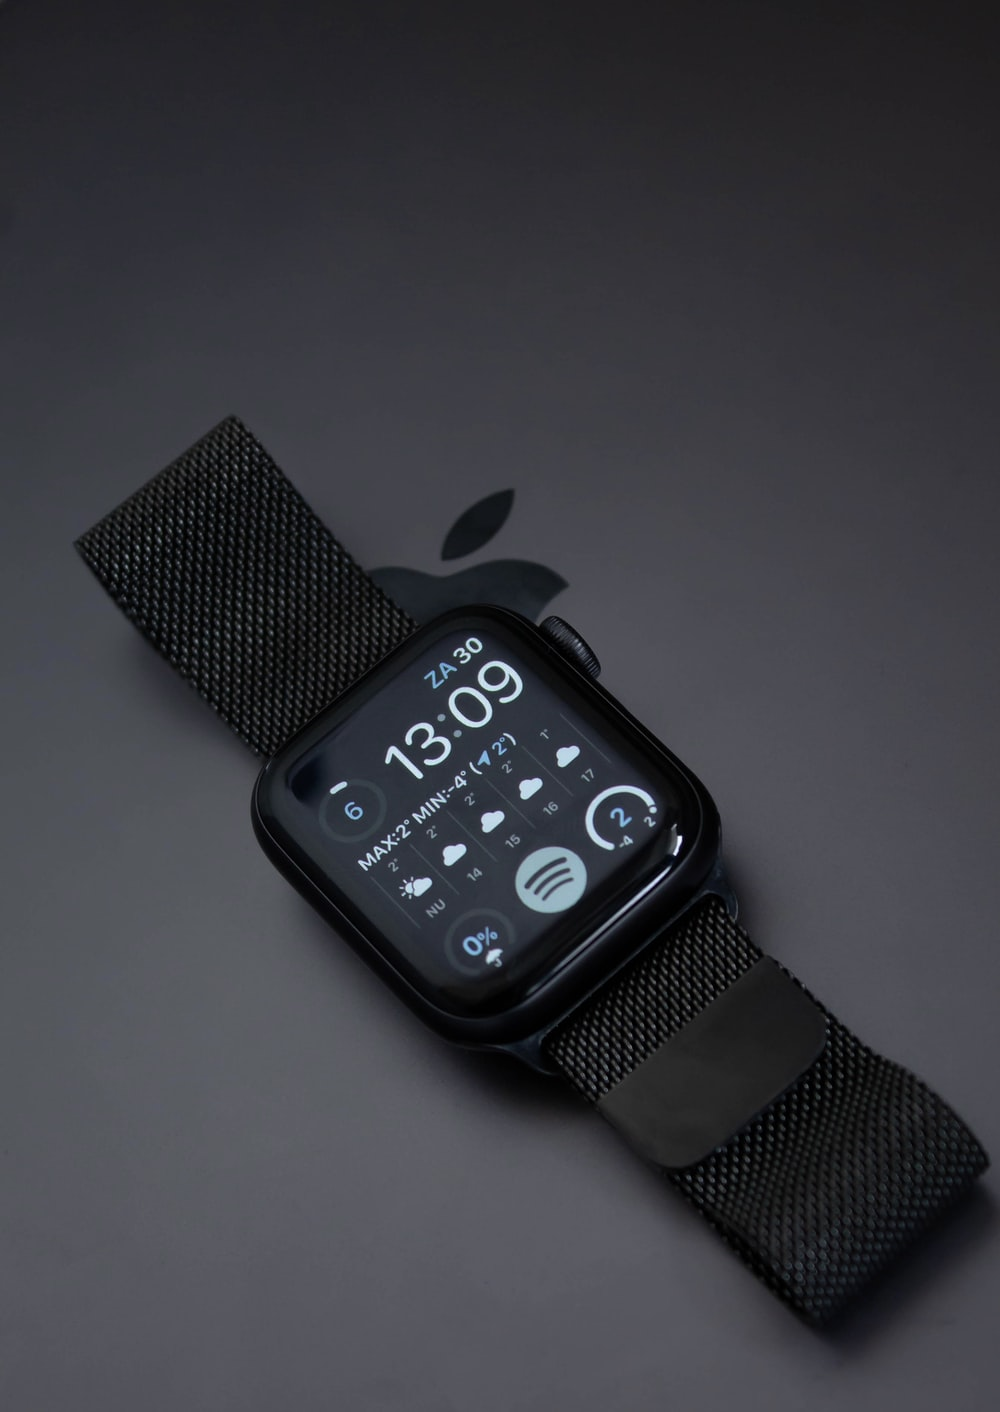 black apple watch with black sport band